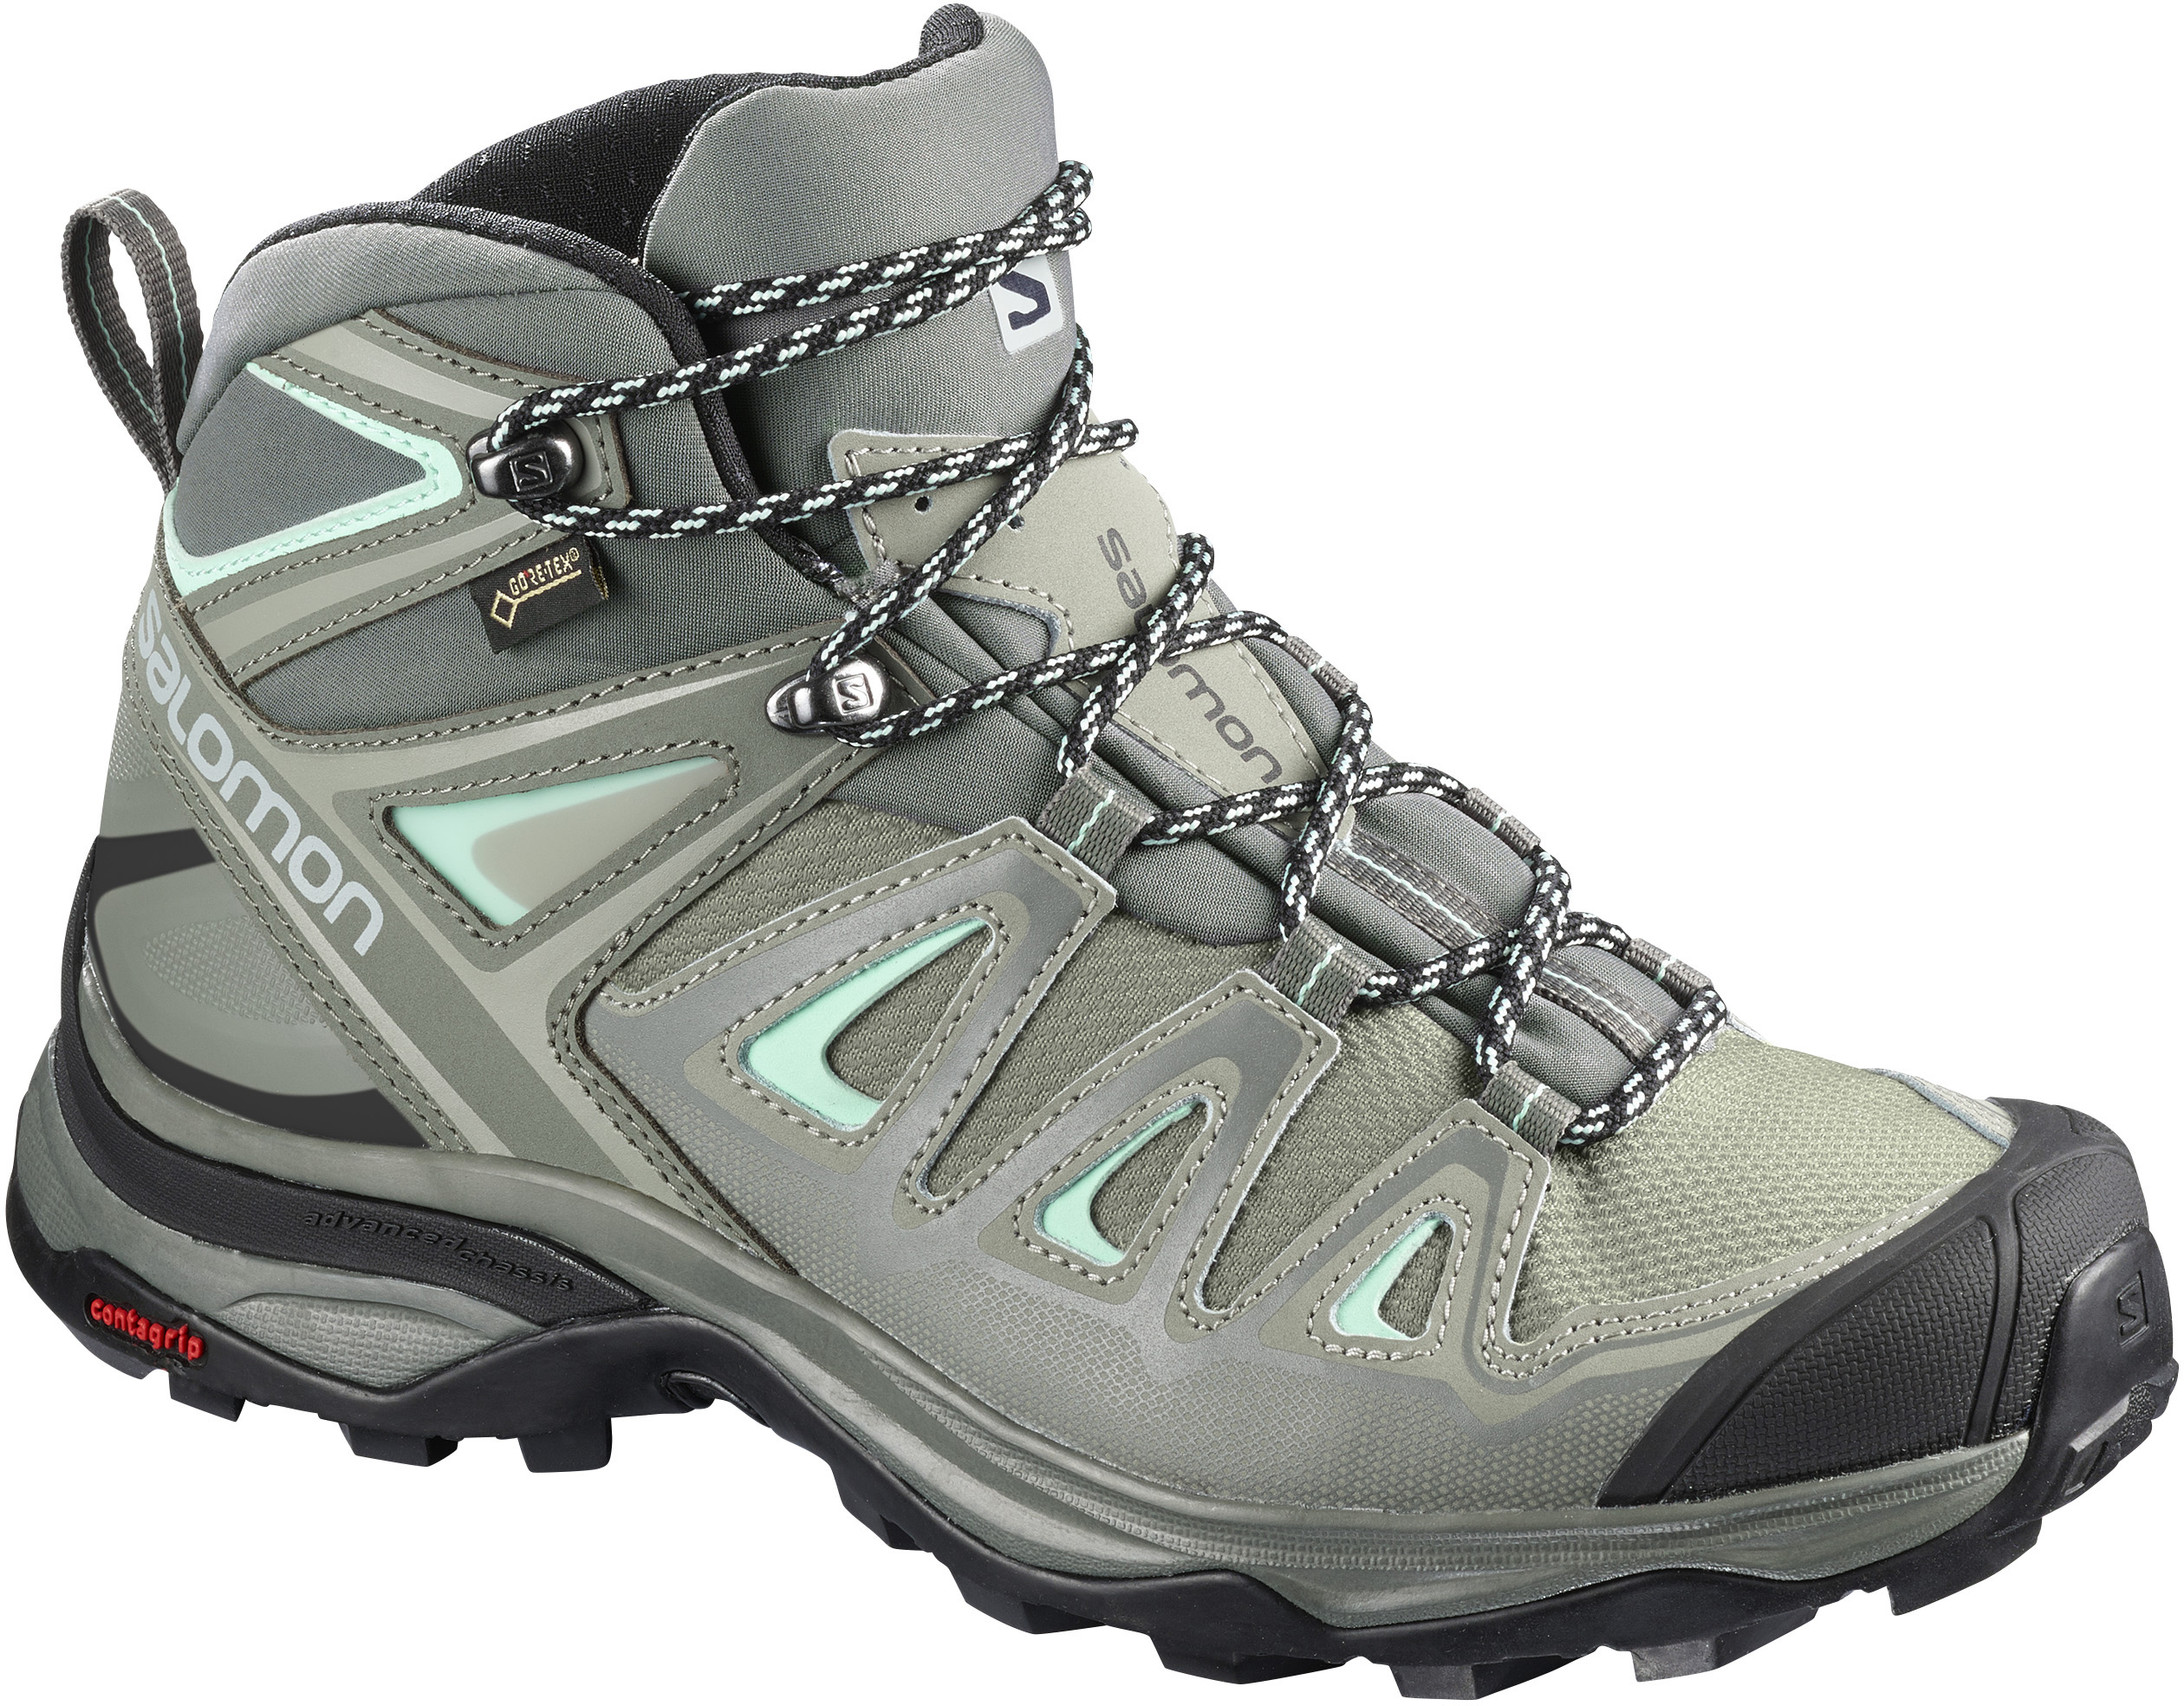 Damen Wanderschuhe X ULTRA 3 MID GTX, SHADOW/CASTOR GRAY/BEACH GLASS, 5.5